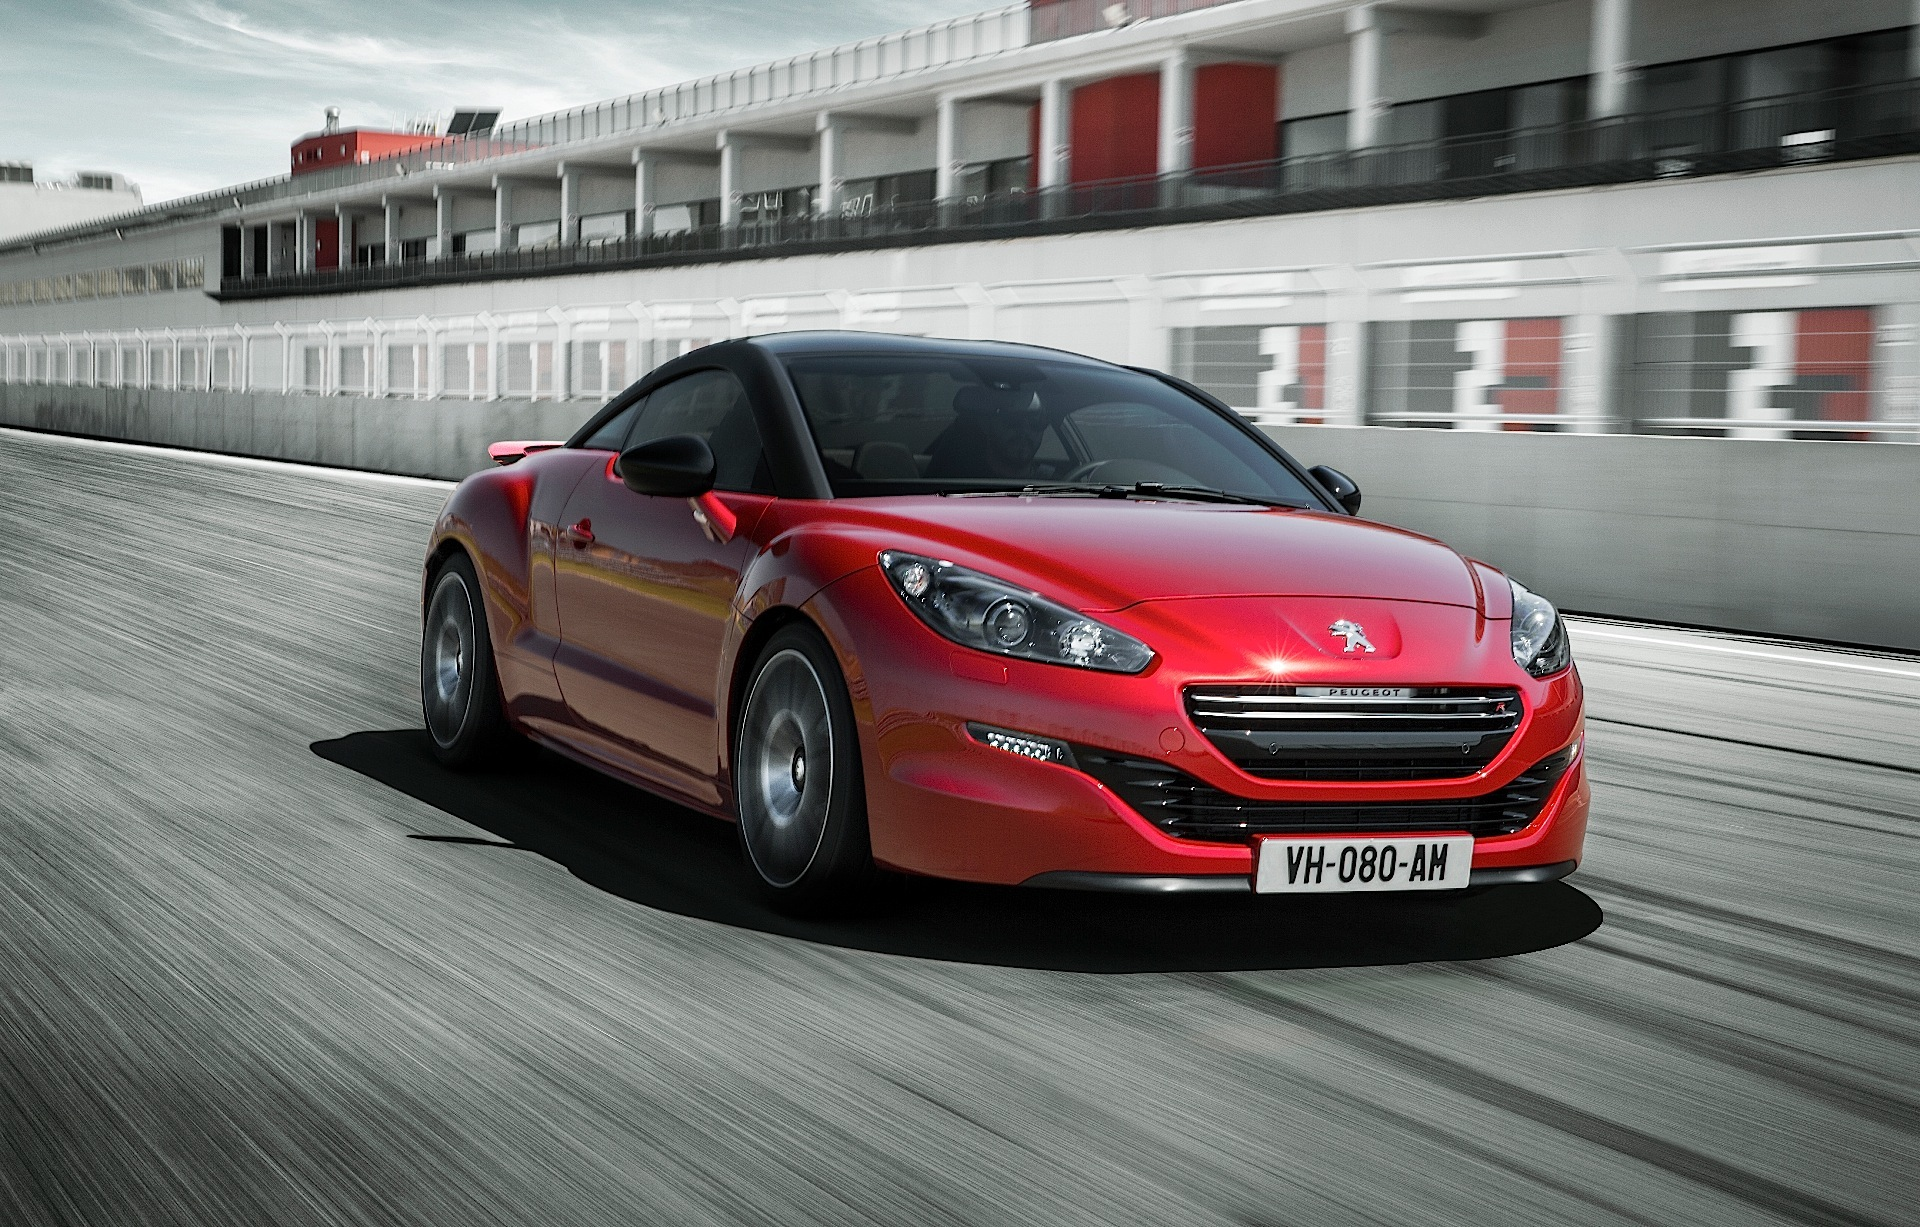 peugeot rcz r specs 2013 2014 2015 2016 2017 2018 autoevolution. Black Bedroom Furniture Sets. Home Design Ideas